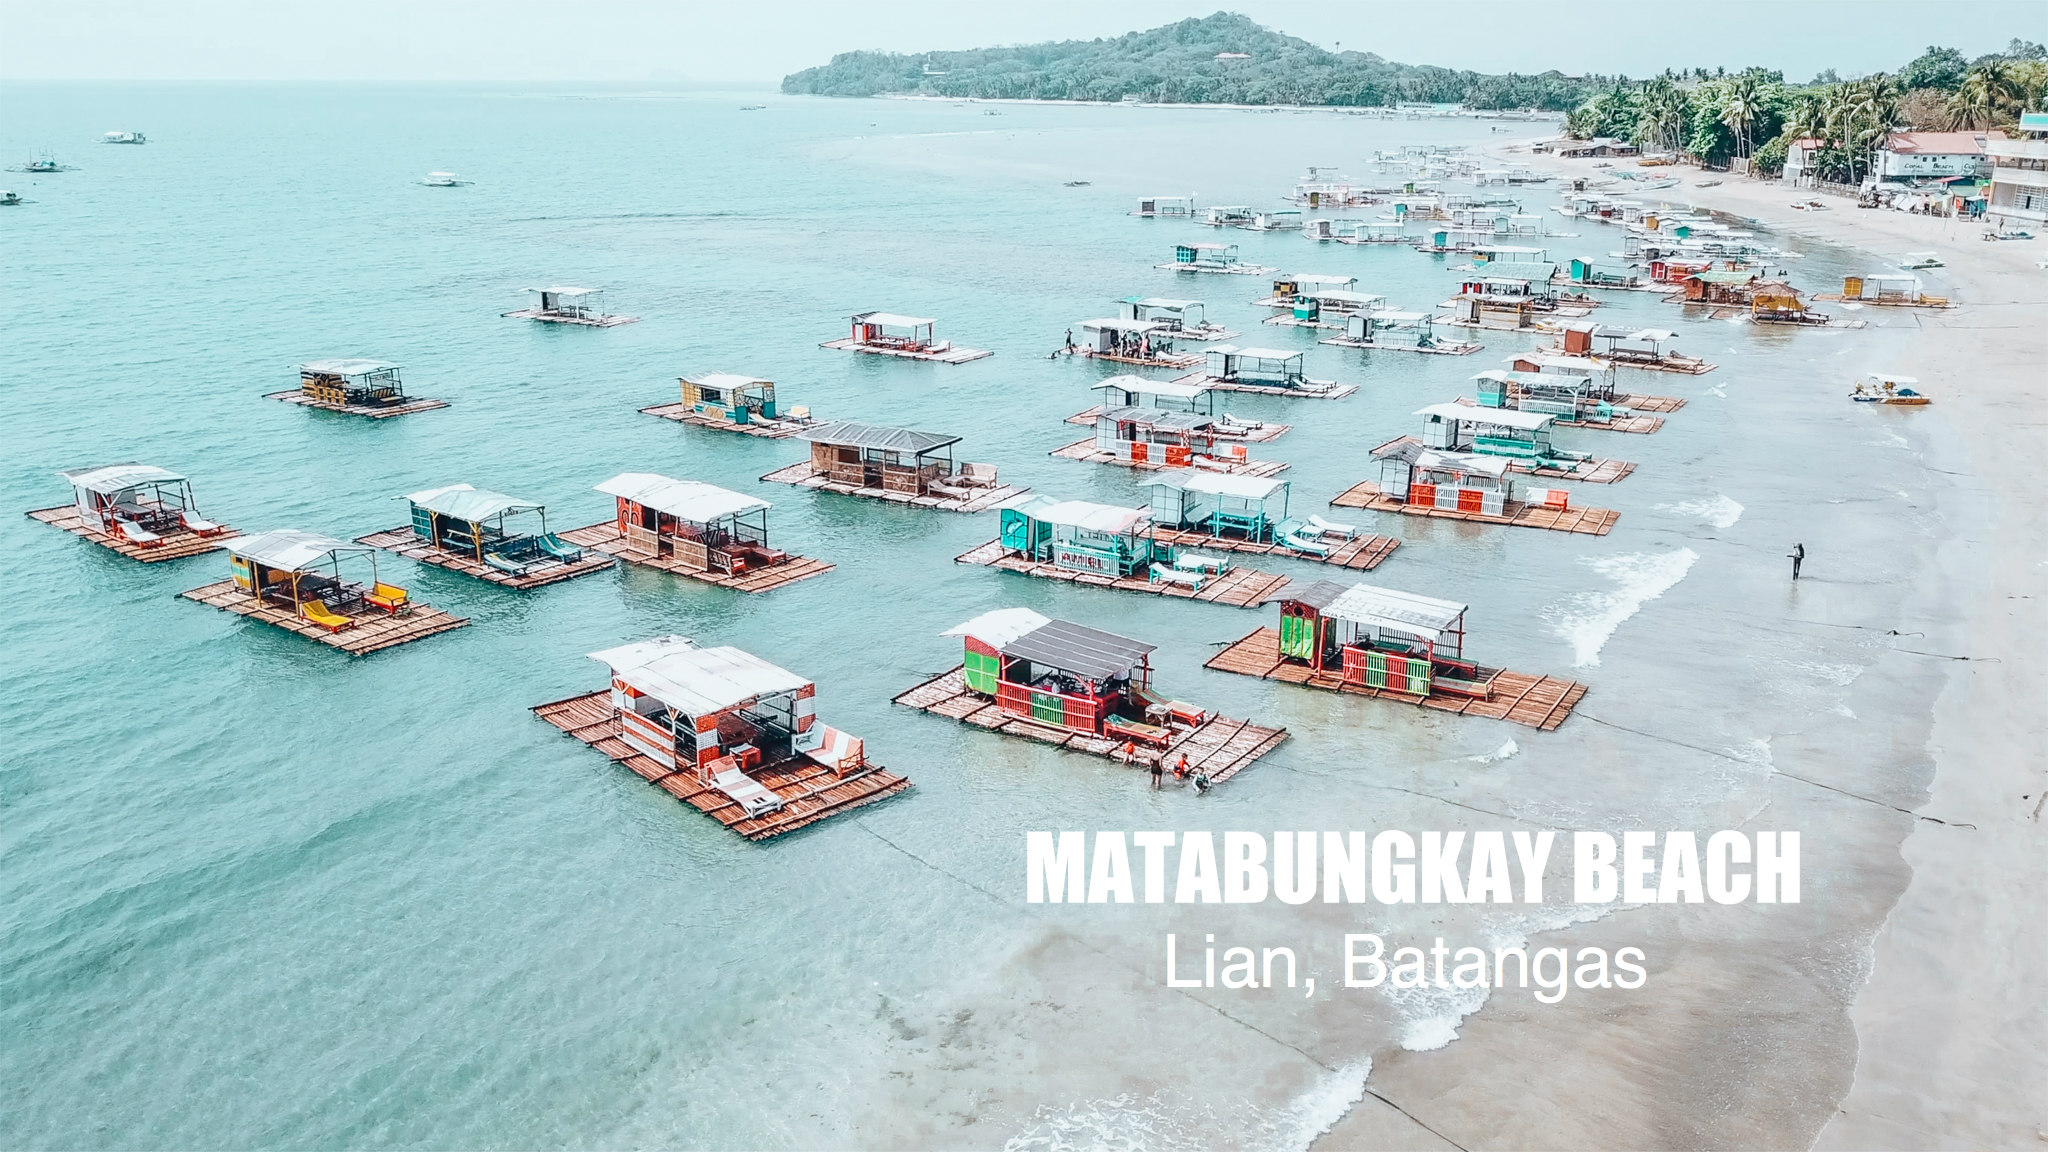 Matabungkay Beach Batangas: How to get there